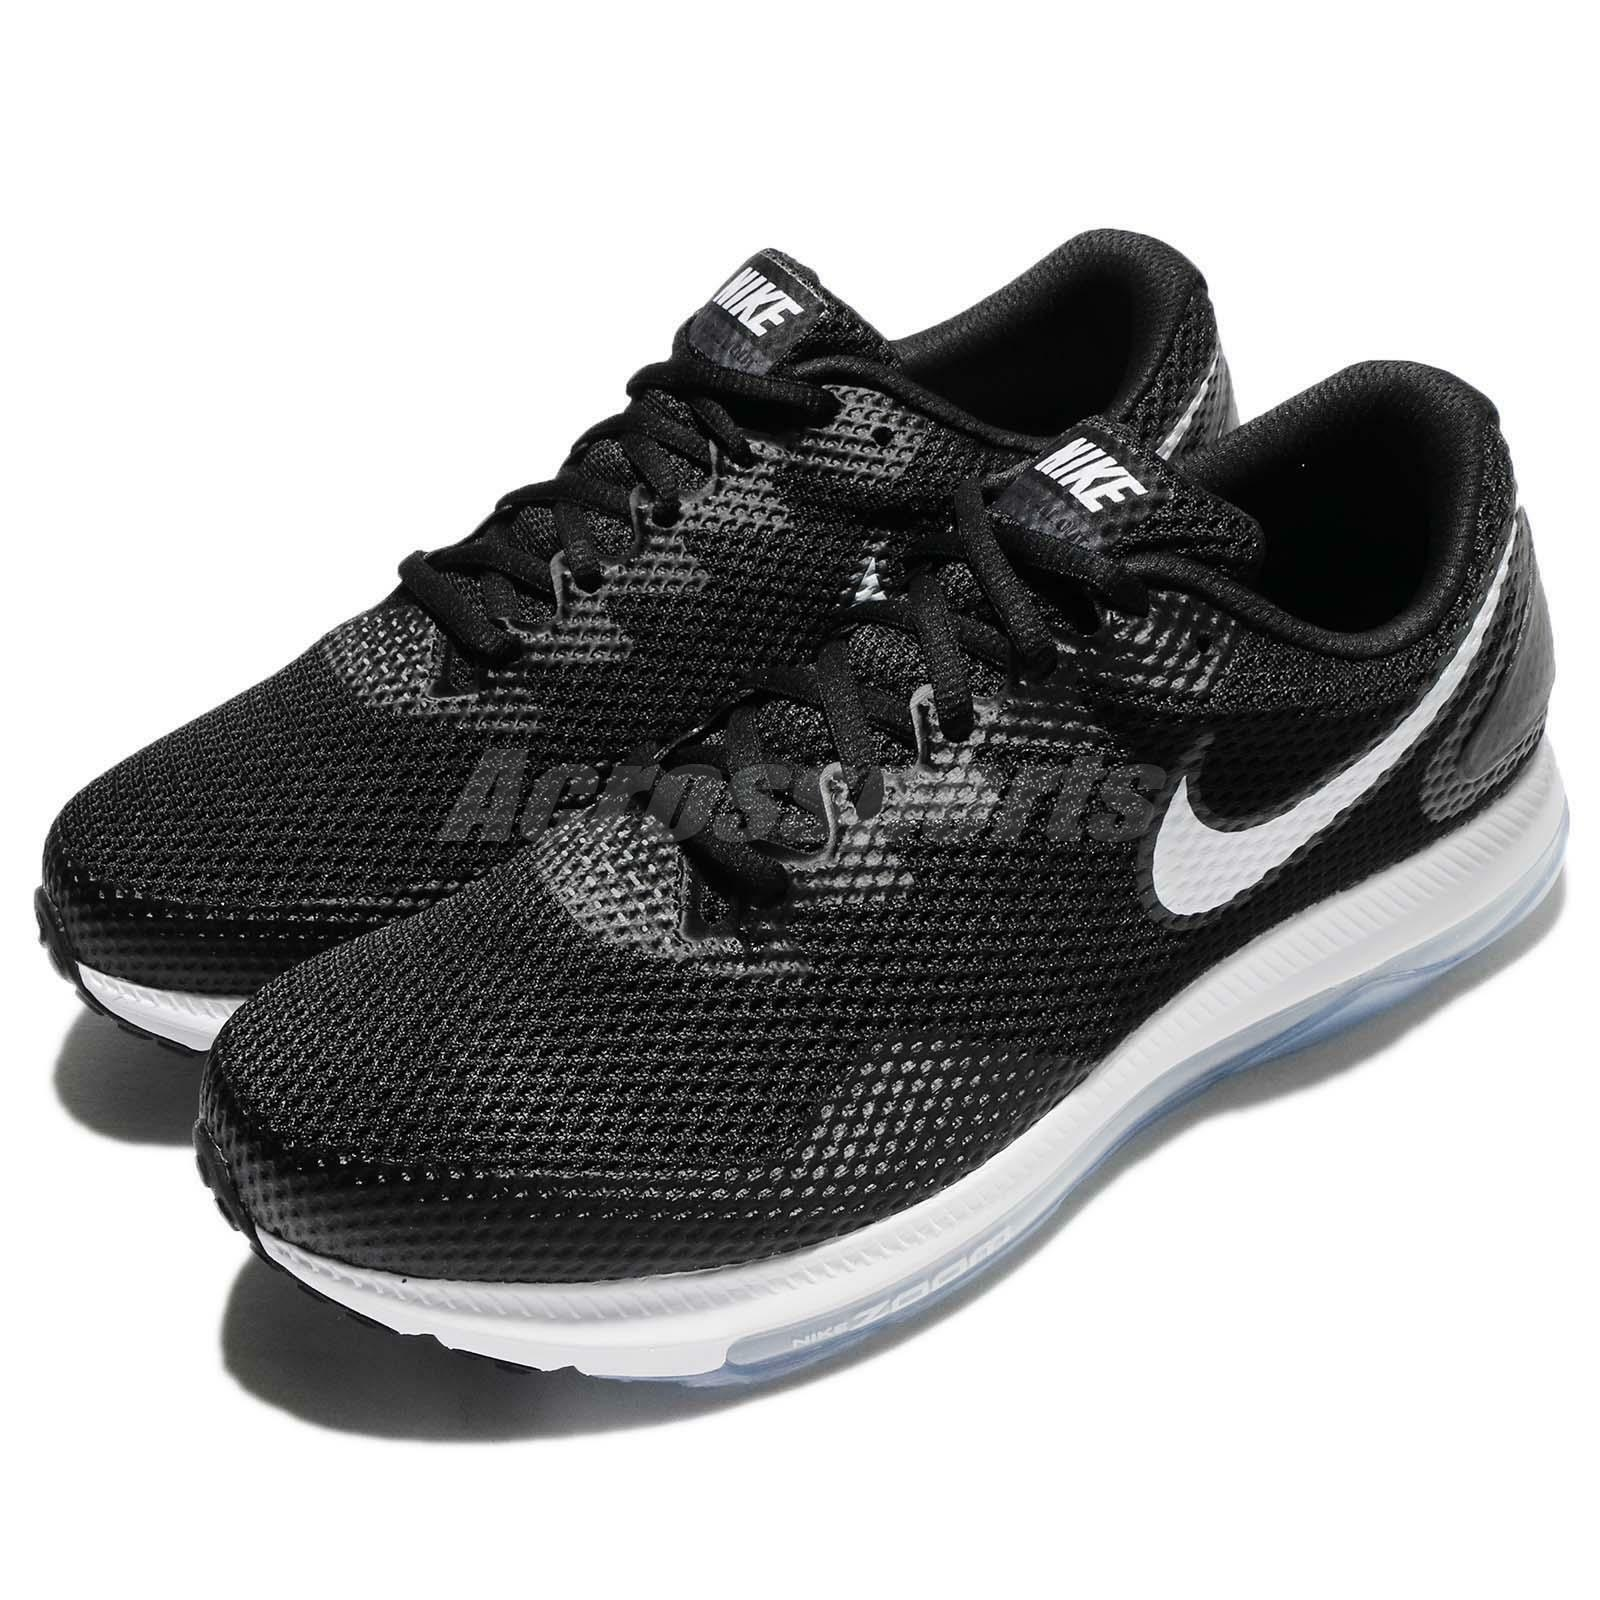 Nike Zoom All Out Low 2 II Black White White White Men Running Shoes Sneakers AJ0035-003 94be2e